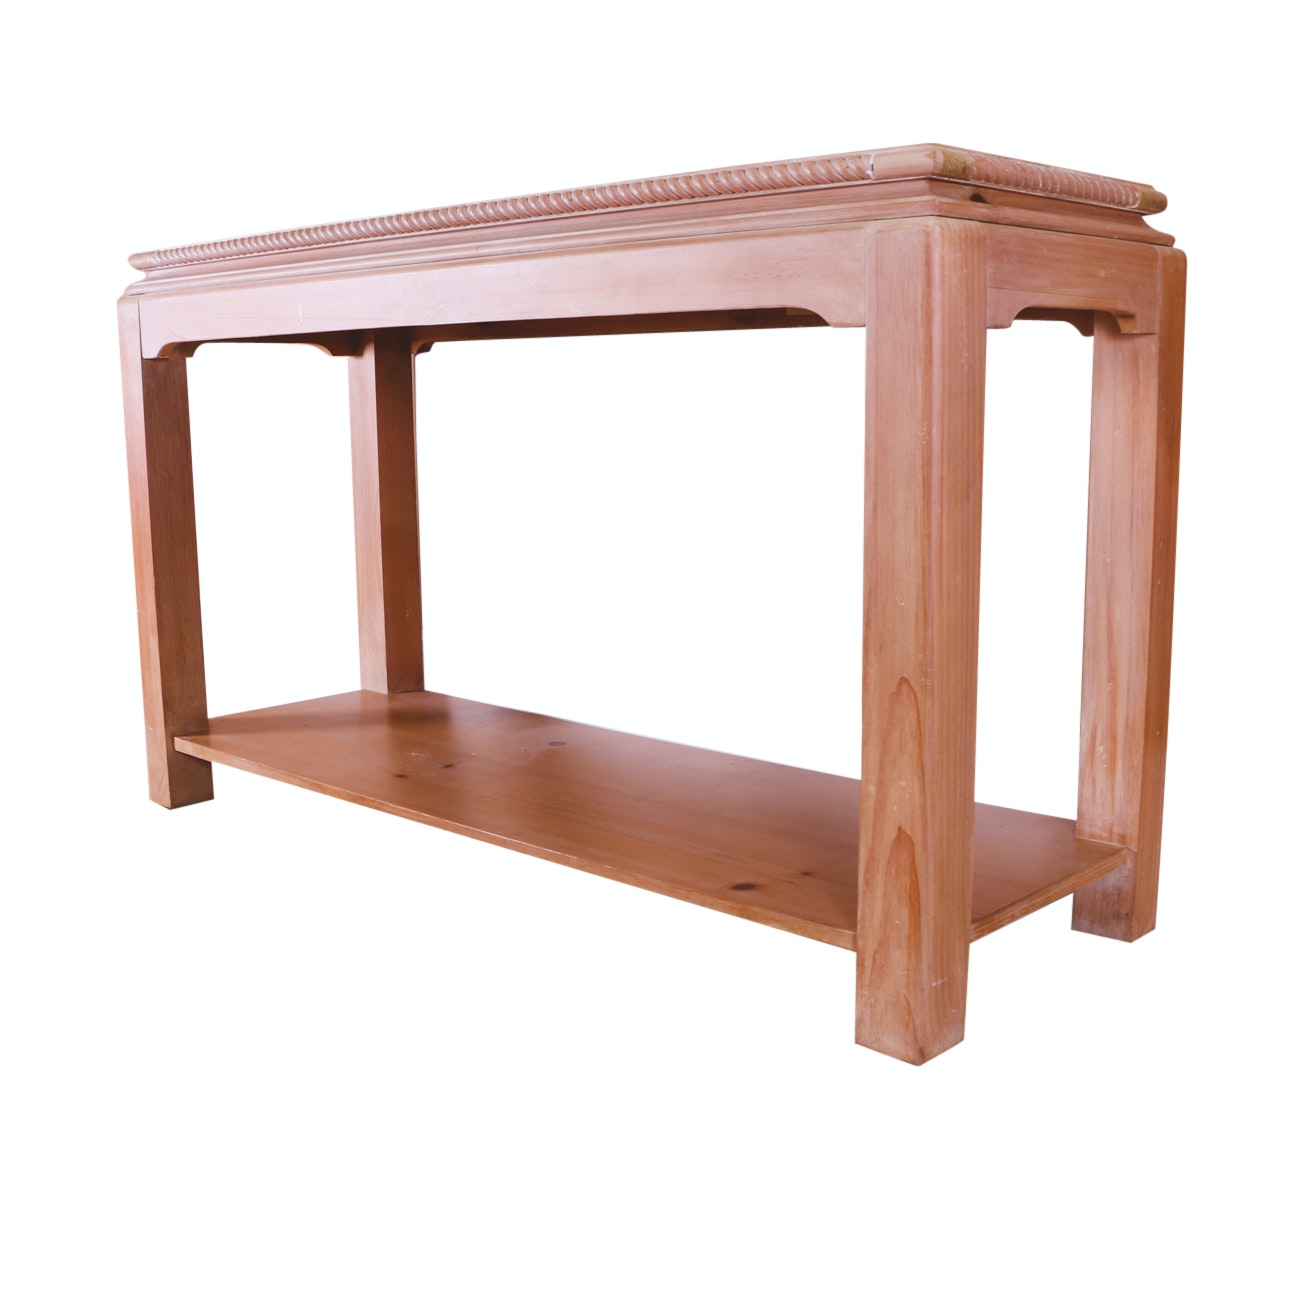 Pine Console Table with Rope Edge